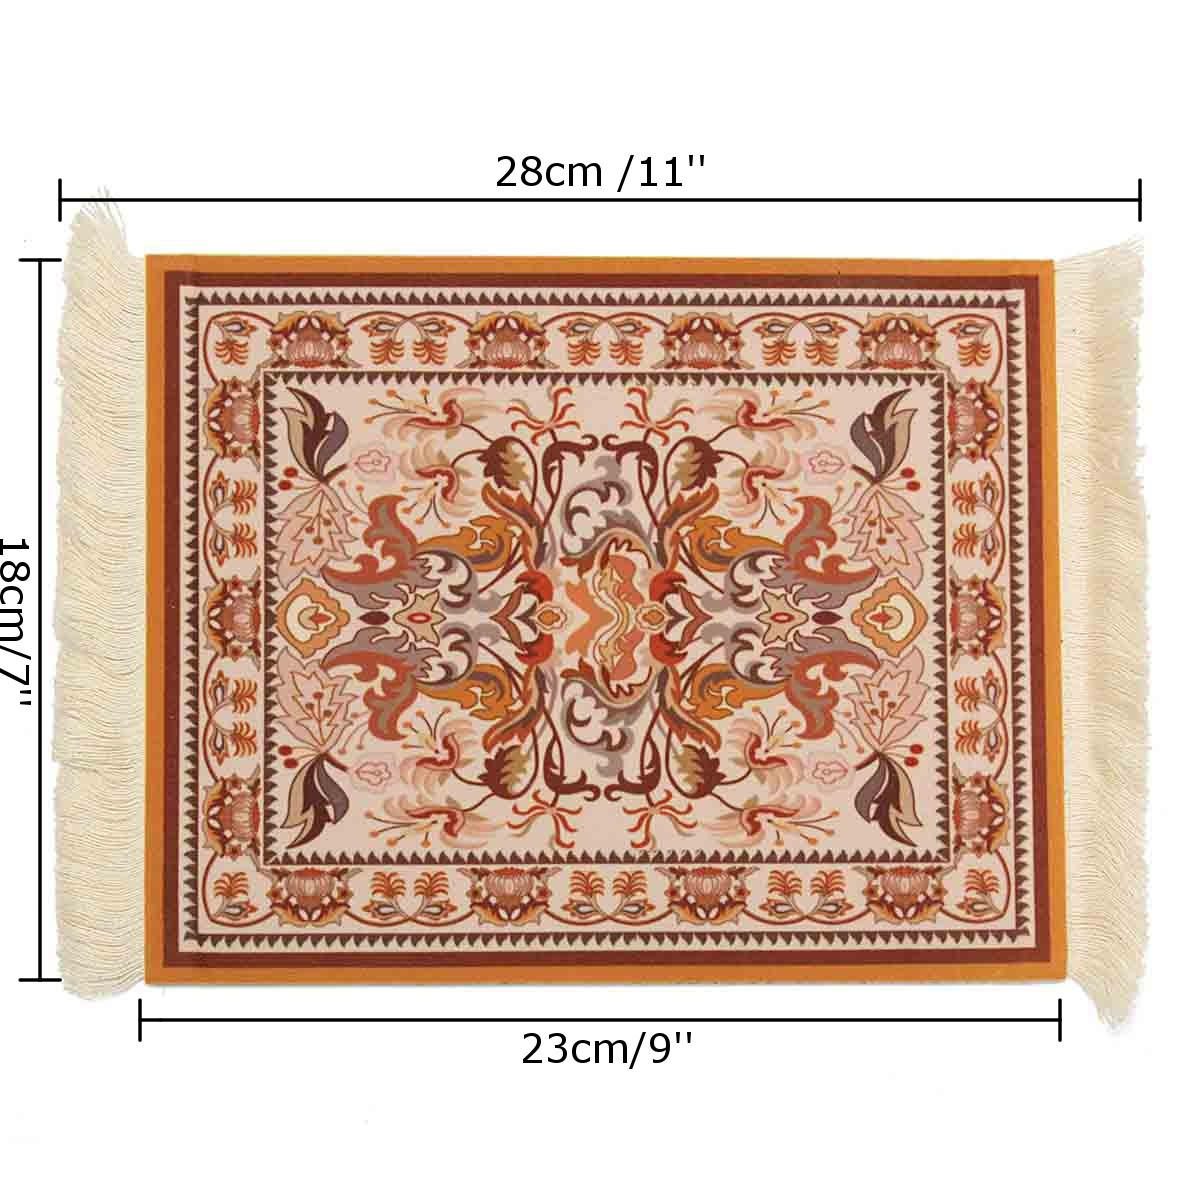 18cm x 28cm 2mm thick Bohemia Style Persian Rug Mouse Pad Mat